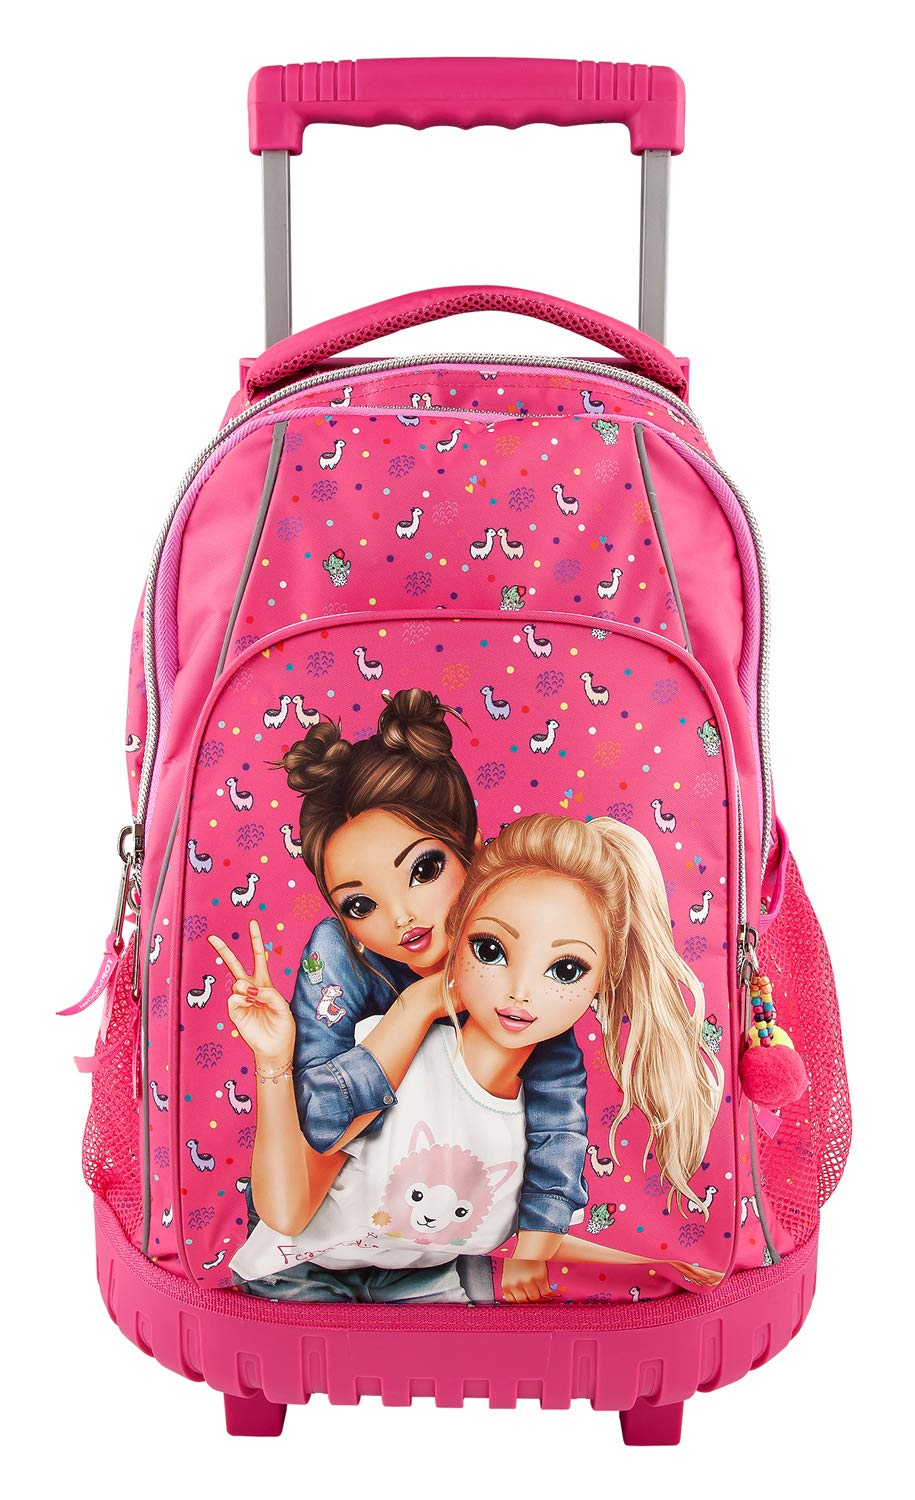 Amazon.com: Depesche 10360 School Rucksack Trolley Top Model Pink: Toys & Games